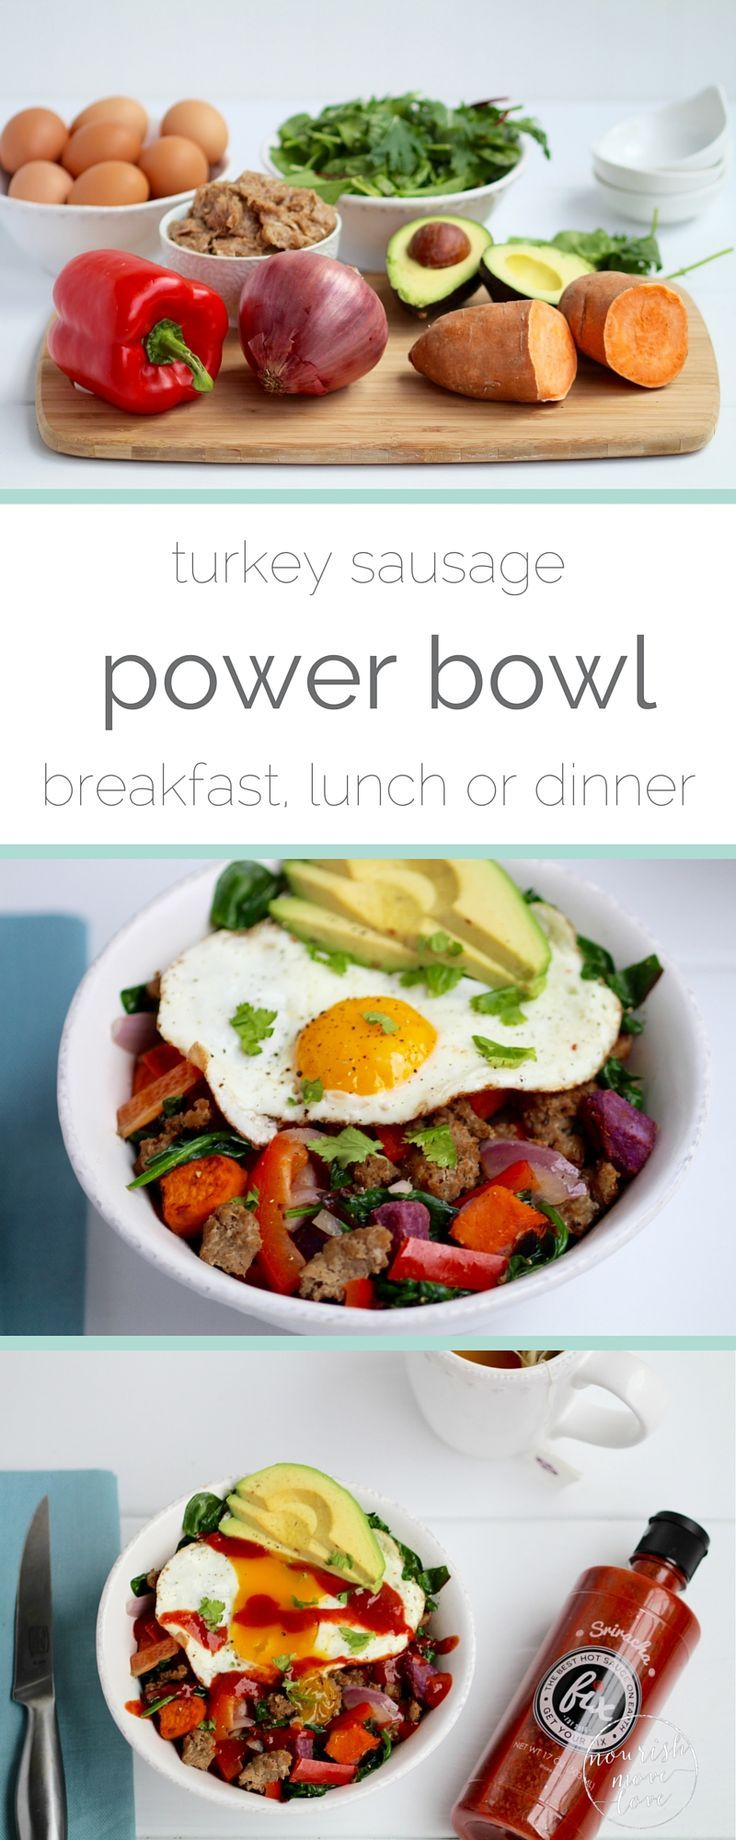 this power bowl is packed with nutritional superstars like sweet potato, avocado, turkey sausage, greens, and eggs. talk about a healthy, well-balanced bowl, rich in iron and fiber. not to mention savory and satisfying as it's protein-packed {turkey sausage and eggs} and topped with with healthy fats {avocado}.